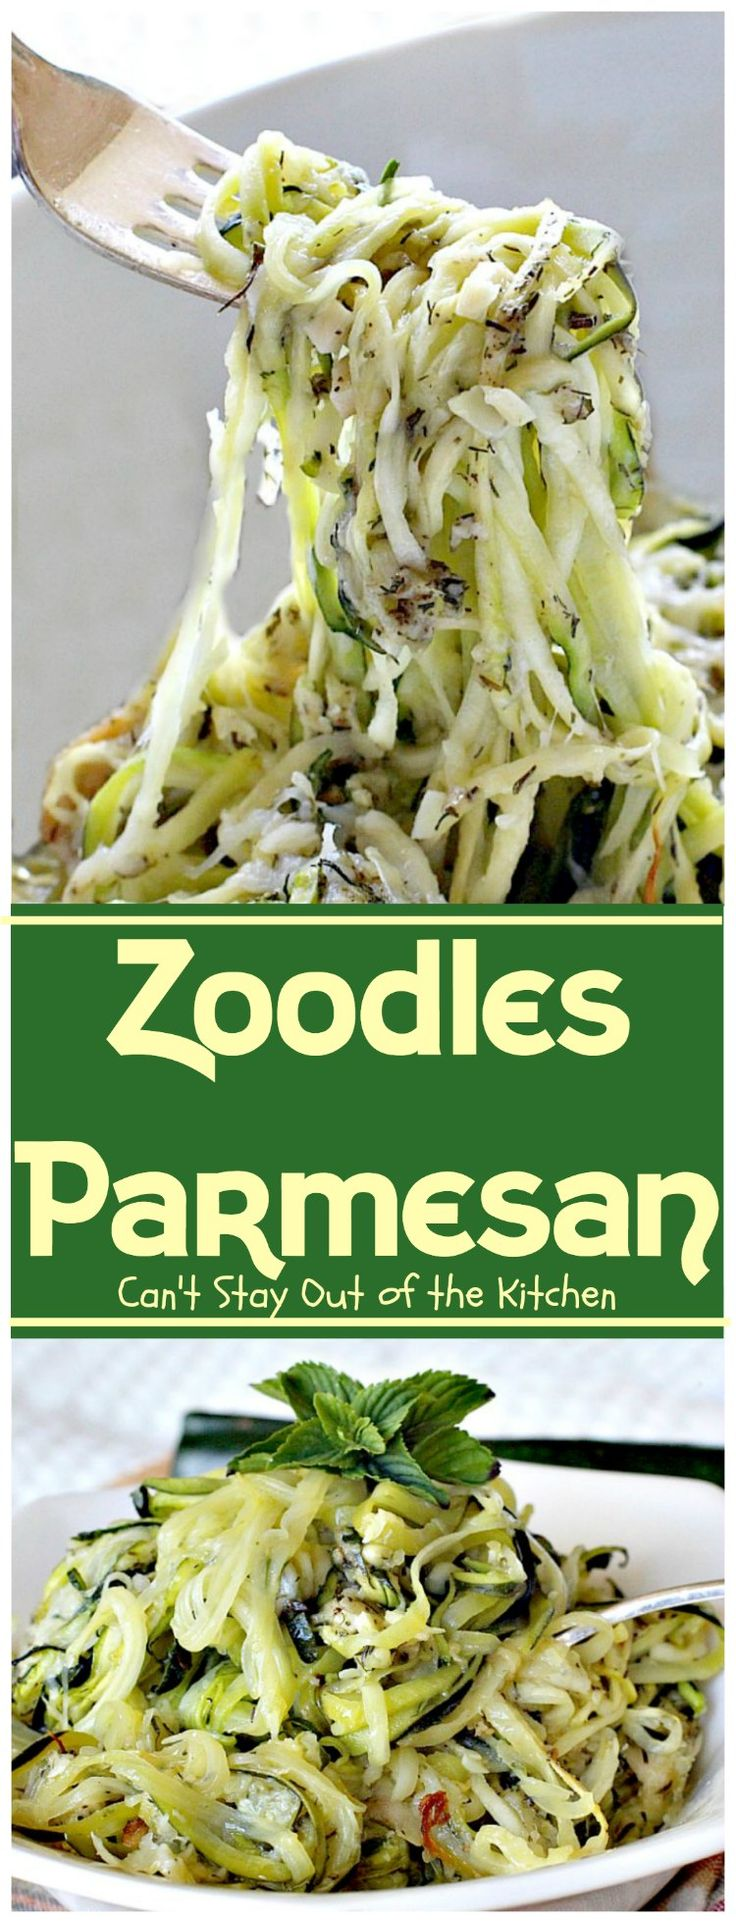 Zoodles Parmesan | Can't Stay Out of the Kitchen | this skinny & delicious side dish is a great way to use up garden #zucchini.…